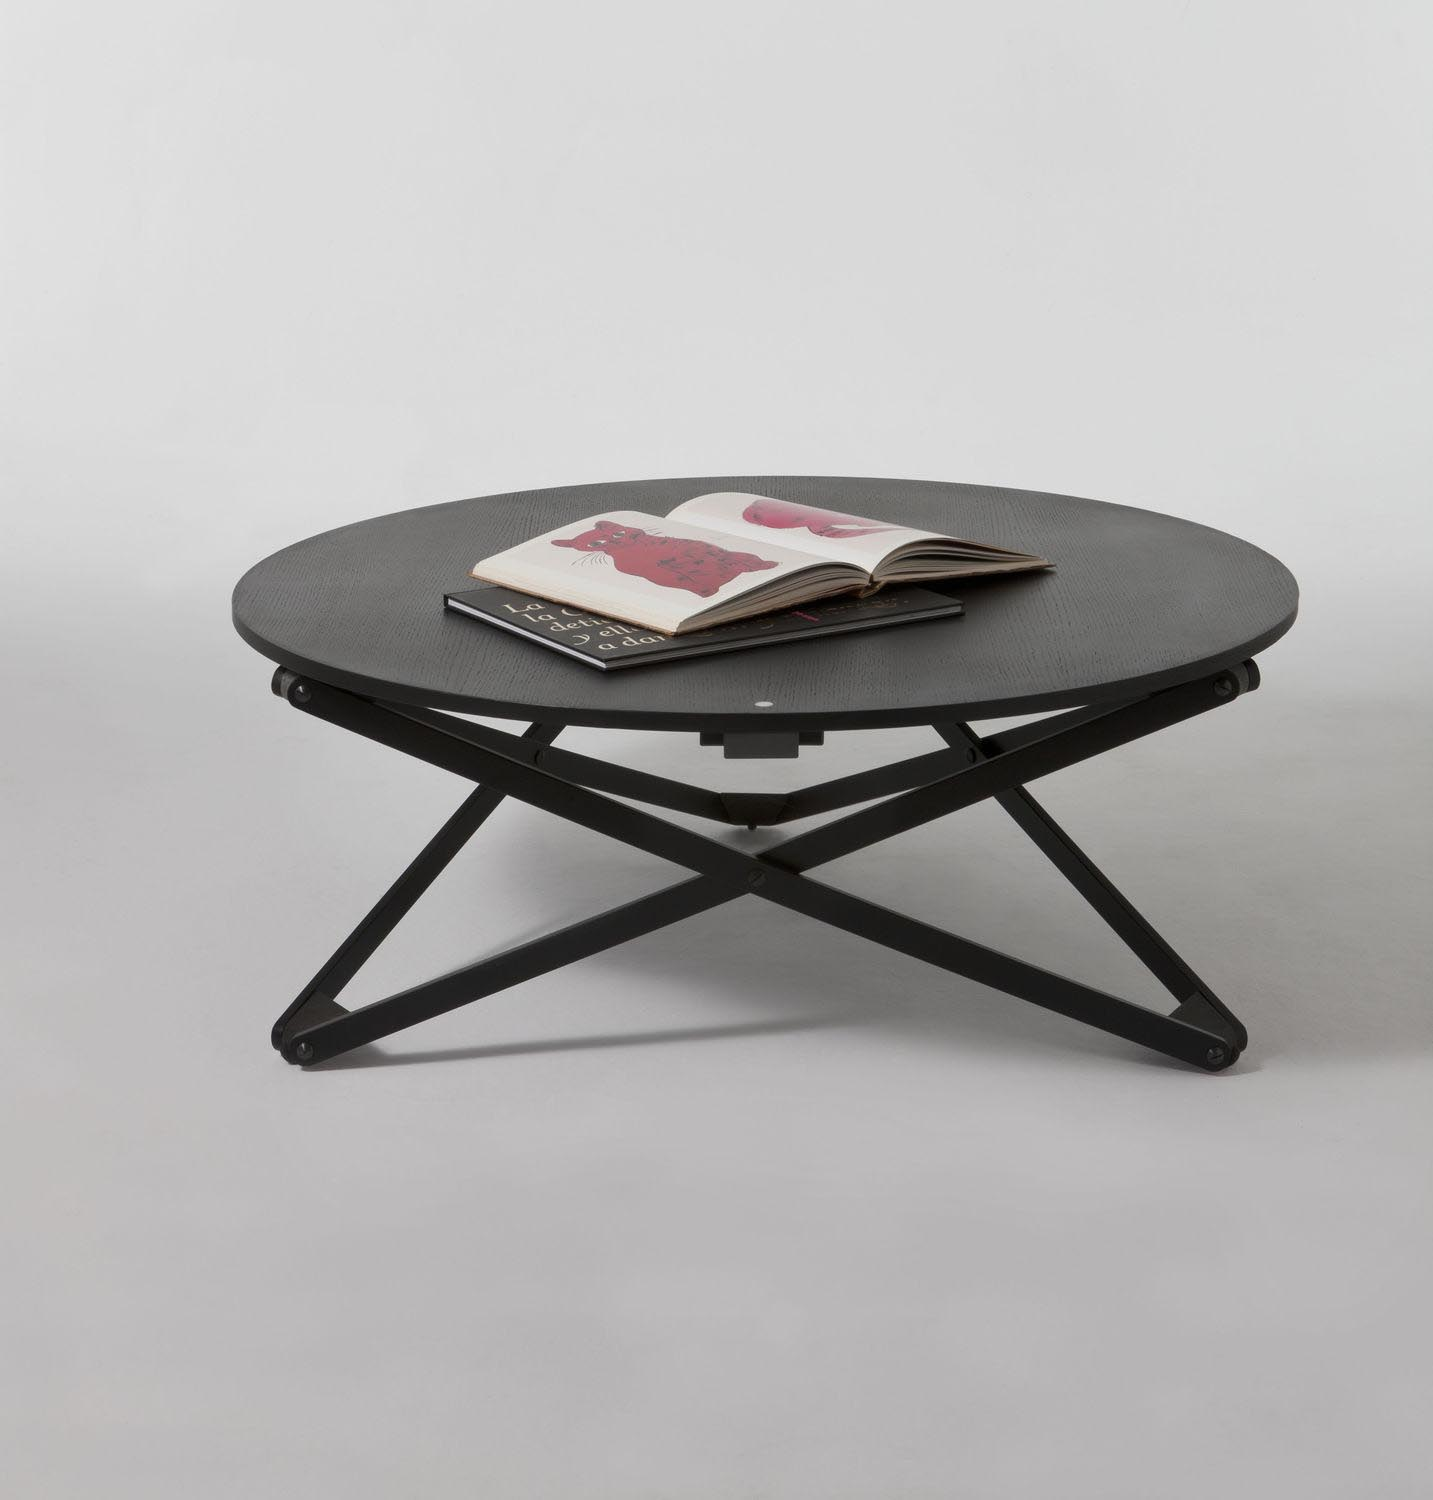 Round Coffee Table With Adjustable Height: Adjustable Height Coffee Table